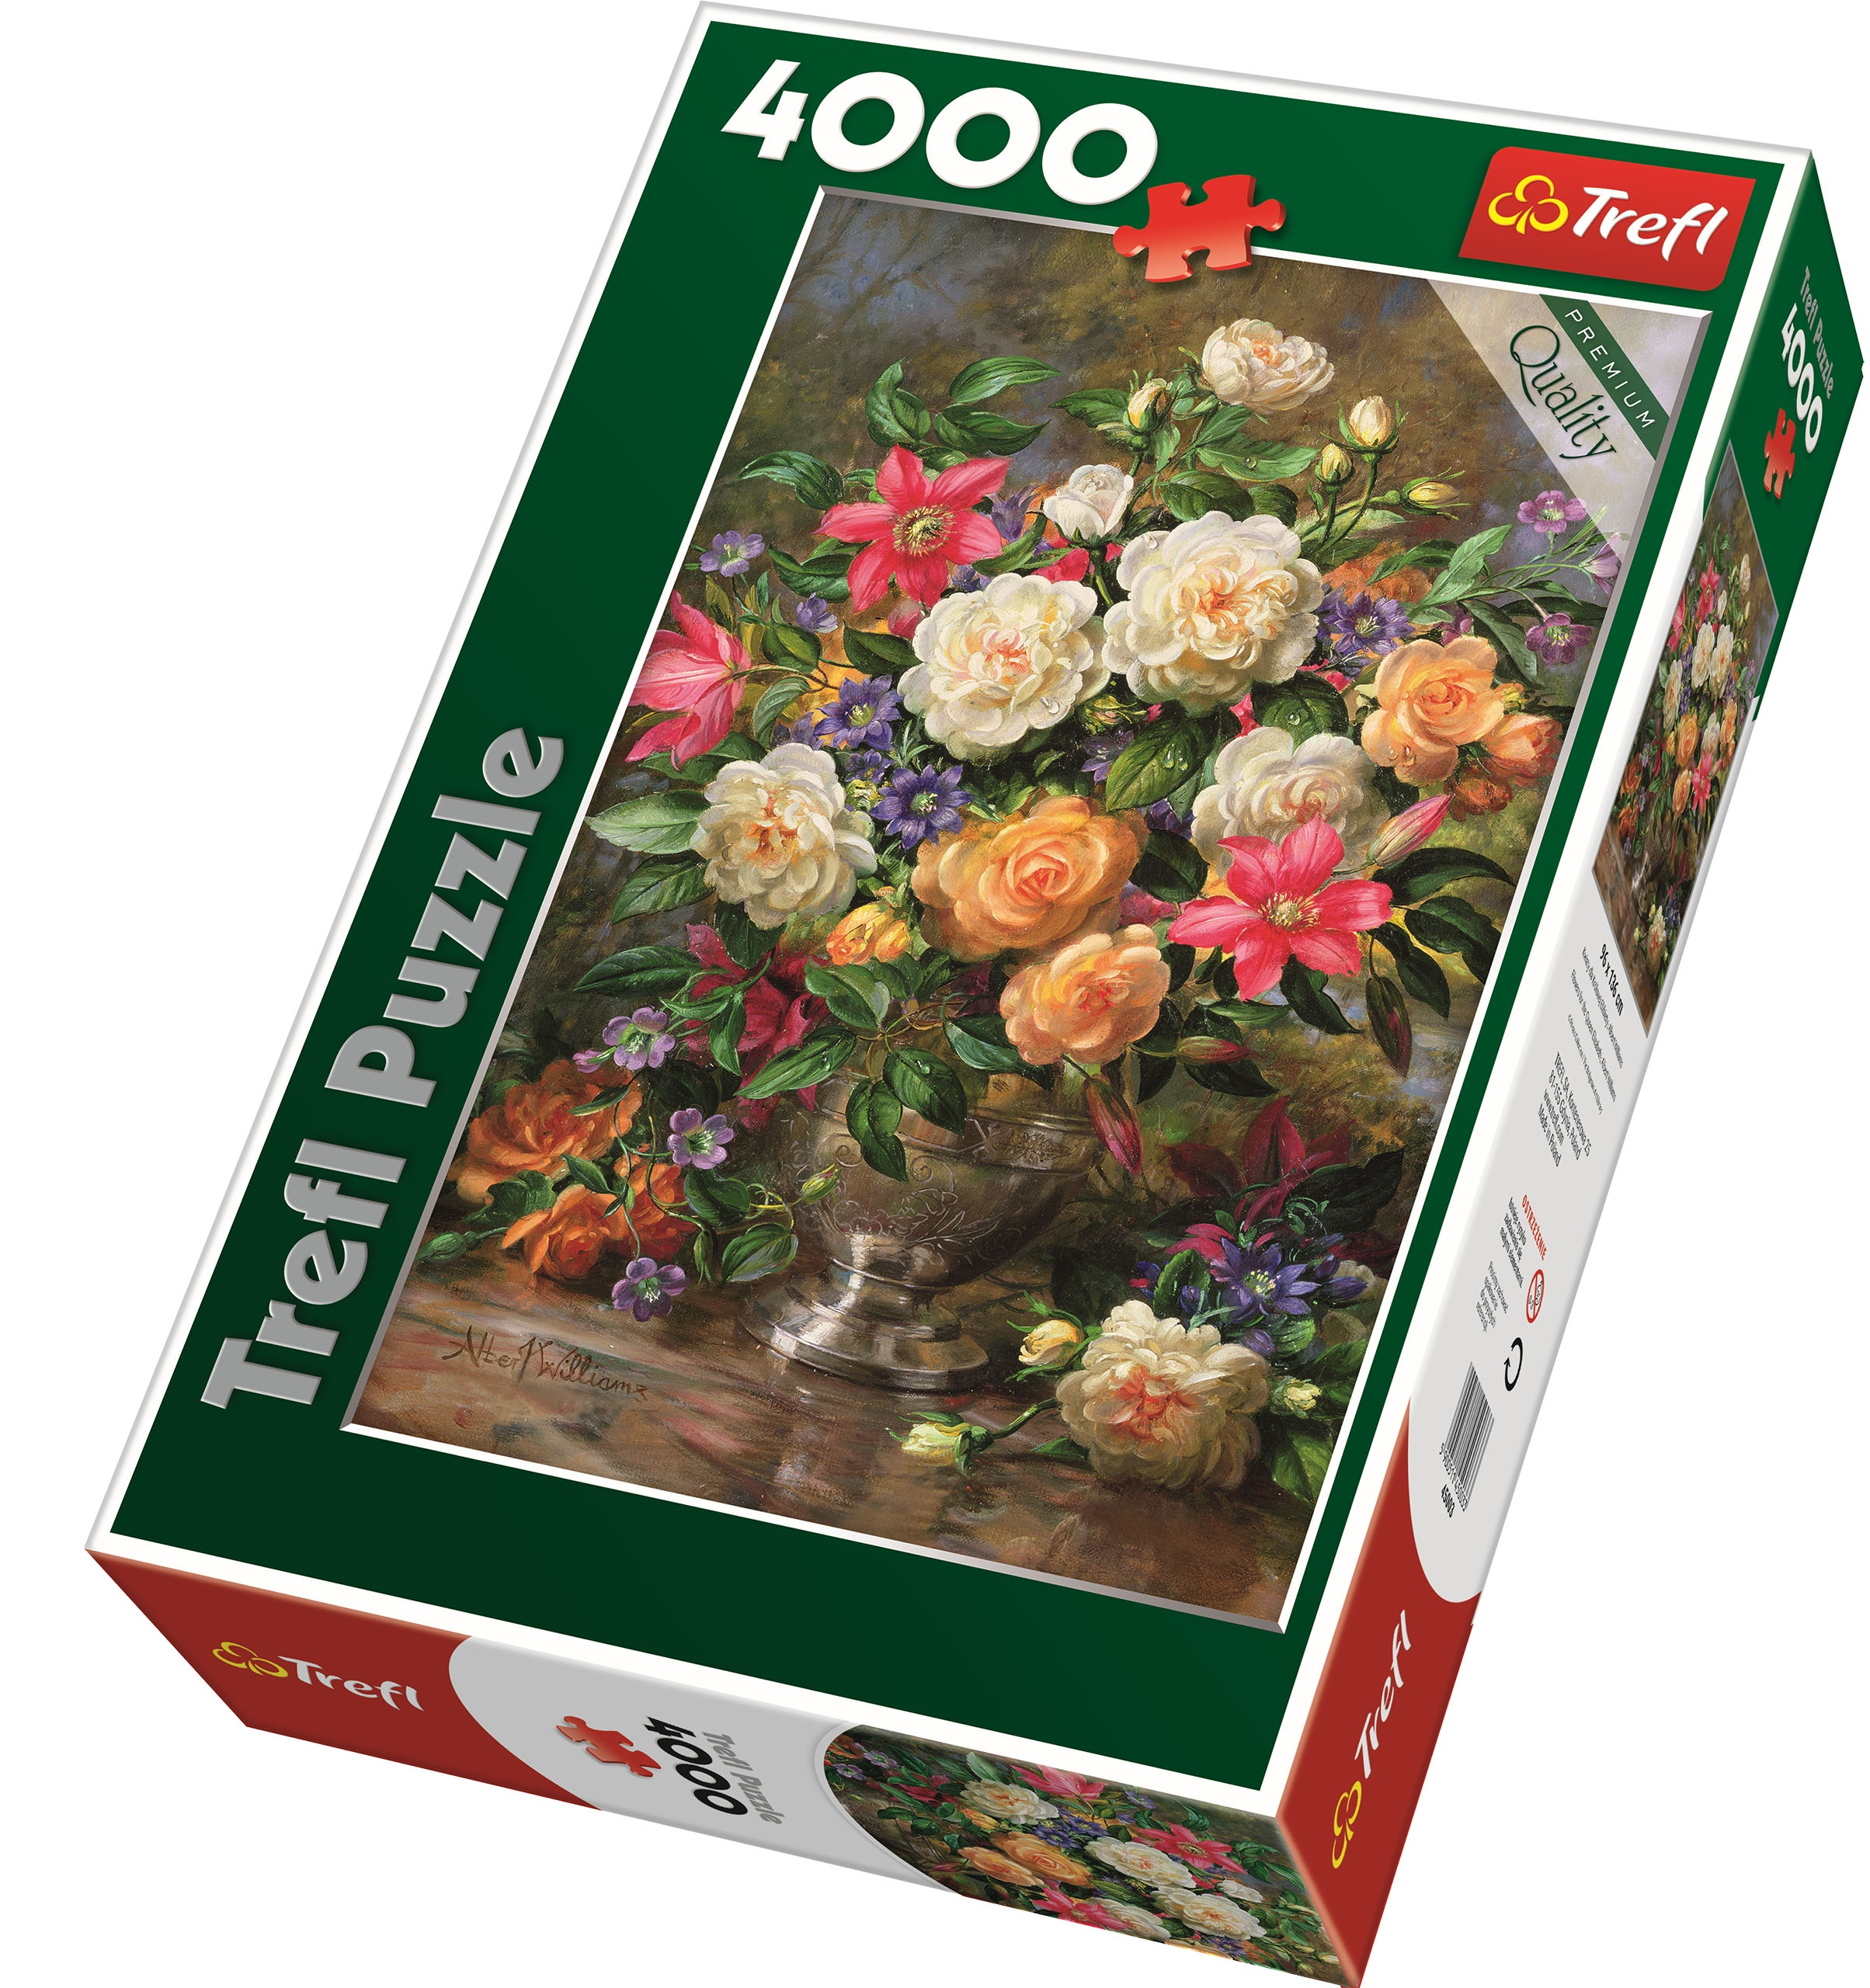 trefl 4000 piece adult large flowers queen elizabeth vase floor jigsaw puzzle ebay. Black Bedroom Furniture Sets. Home Design Ideas